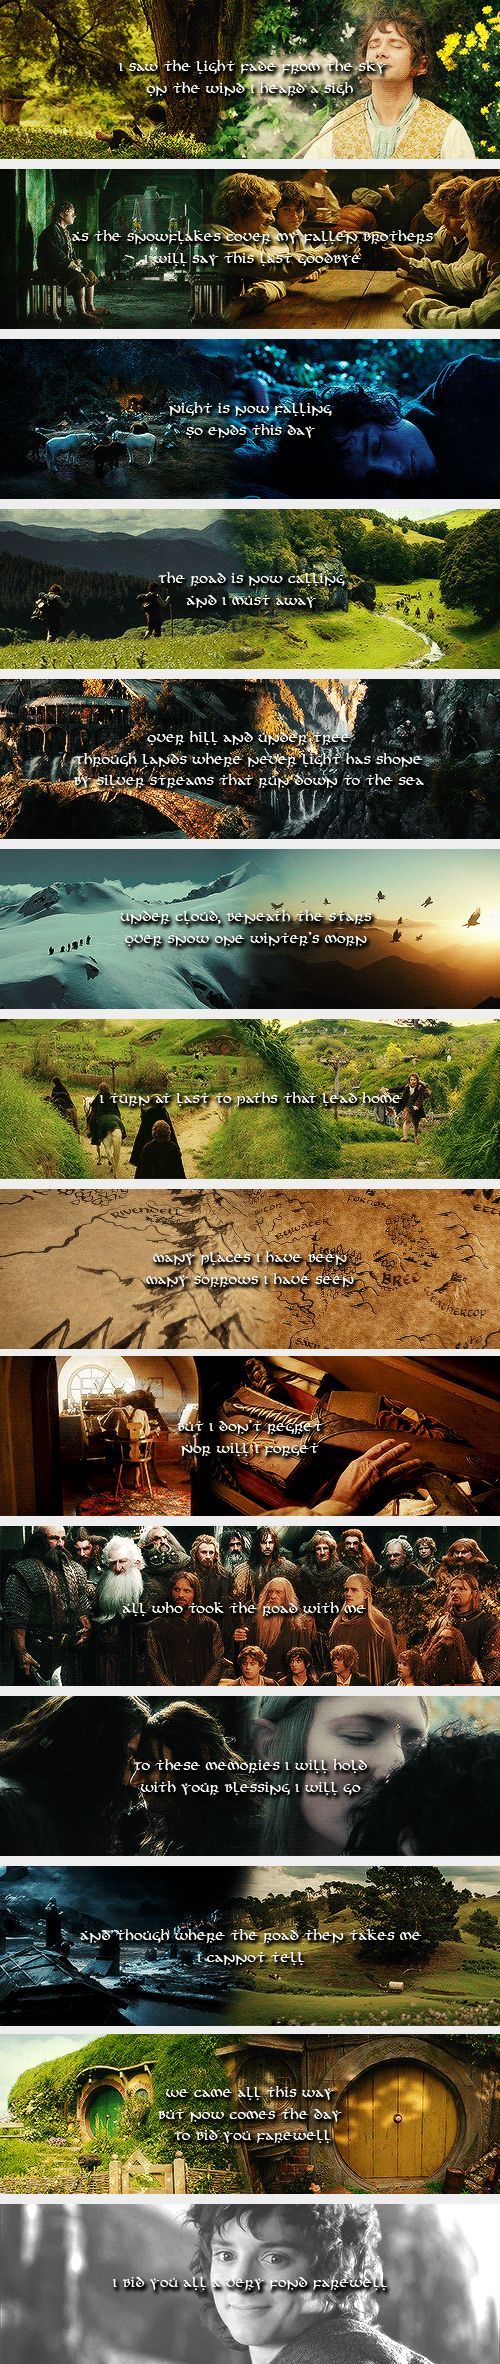 (gif set) ♪I bid you all a very fond farewell♪     The Lord of the Rings and The Hobbit [The Last Goodbye - Billy Boyd]